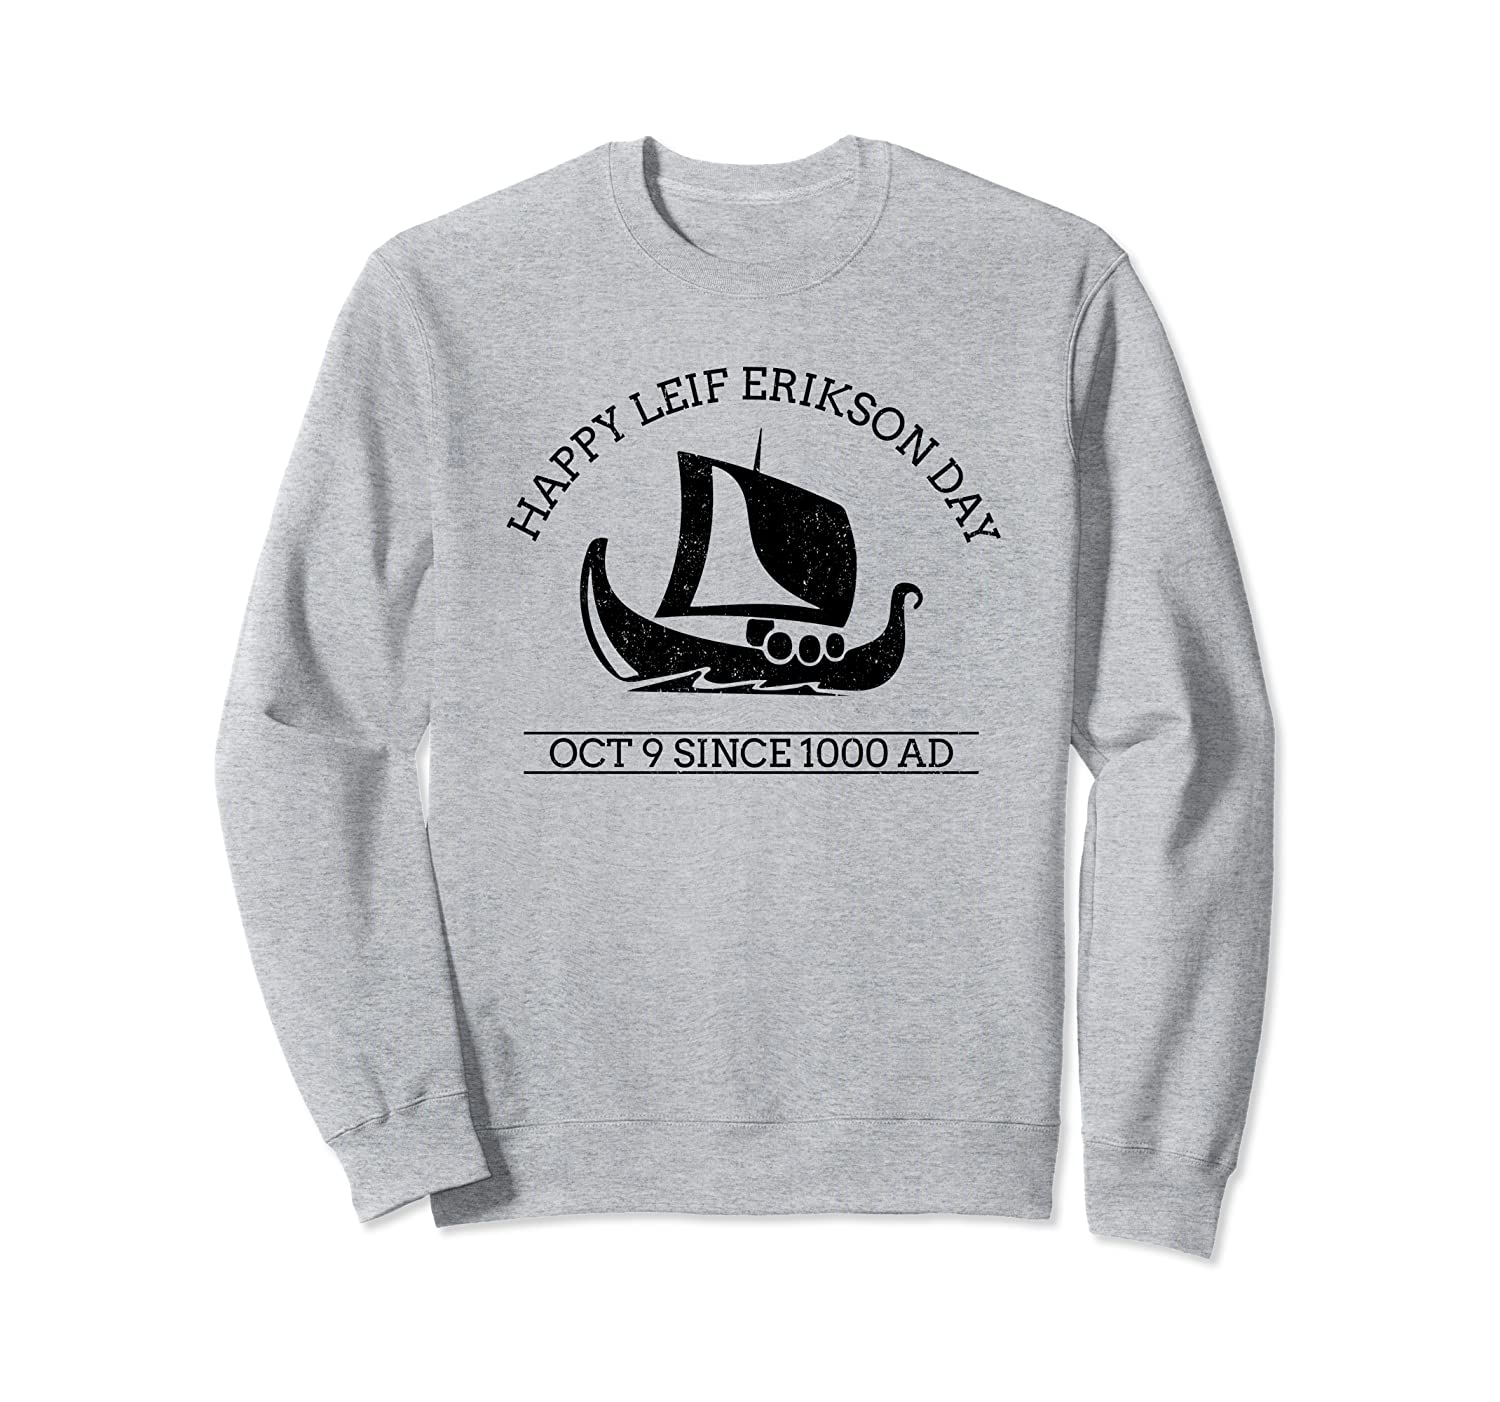 Leif Erikson Day 2019 For Men Women and Youth Sweatshirt-ANZ